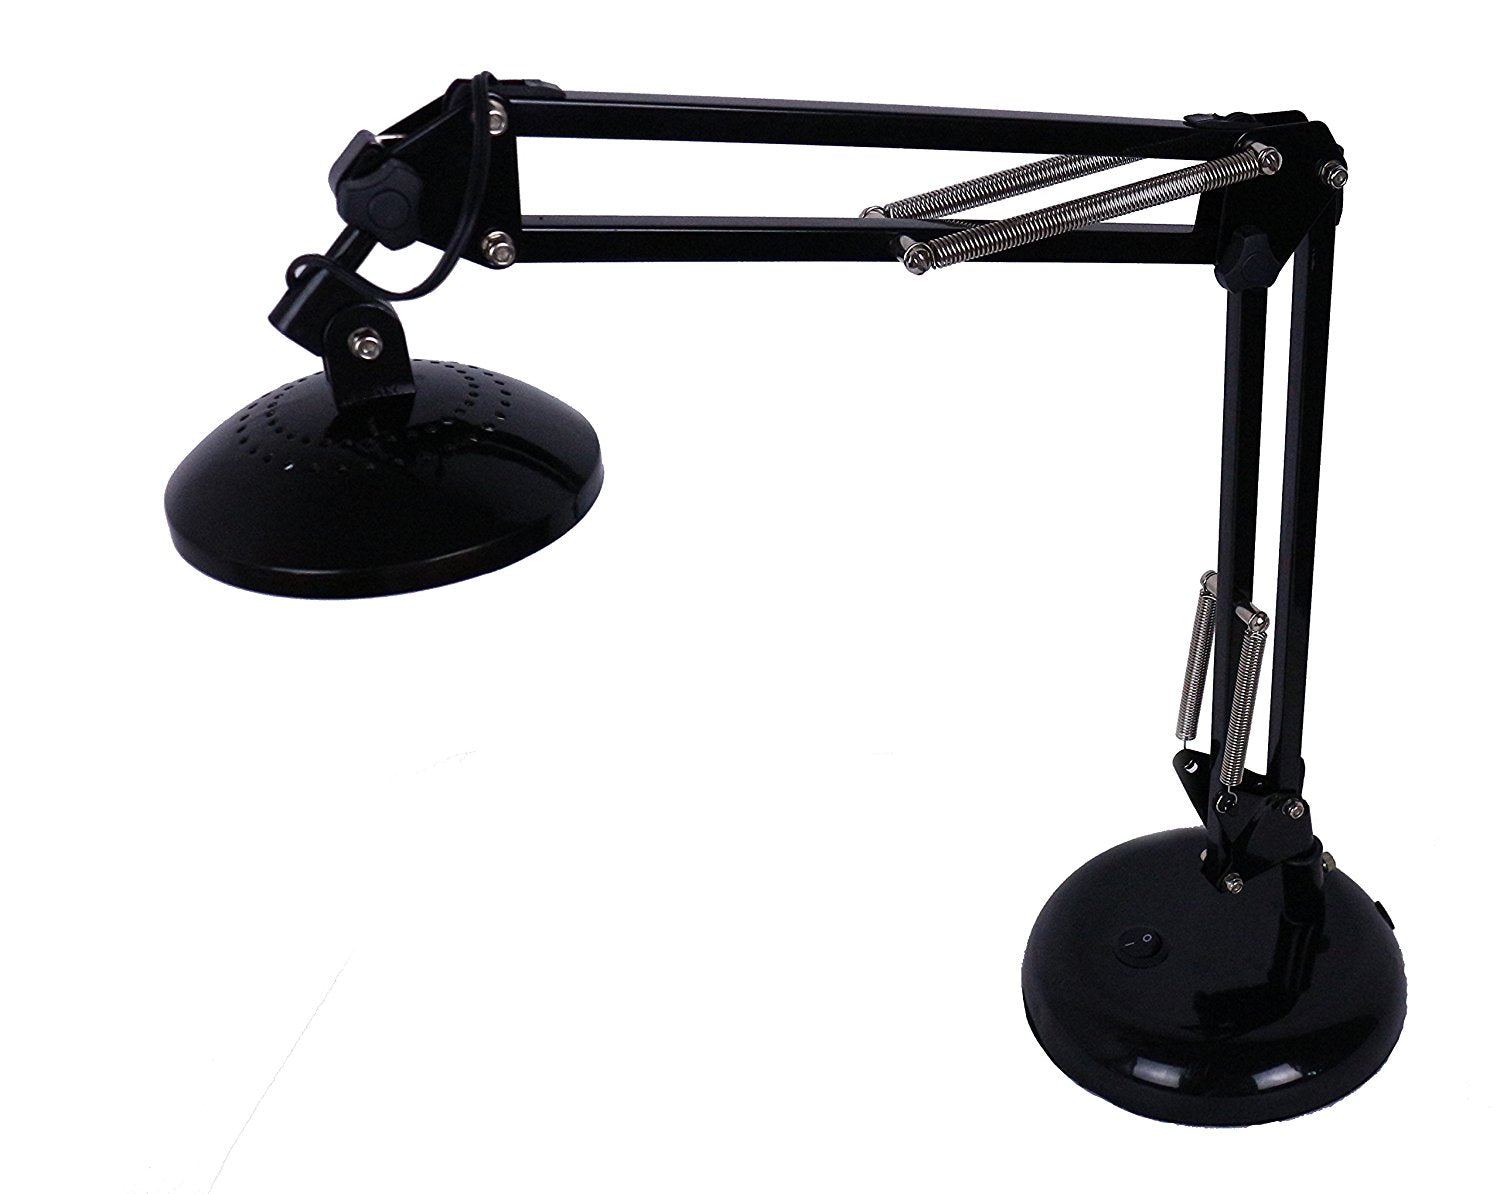 5-Watt LED Energy Saving Architect Swing Arm Desk Lamp, Black